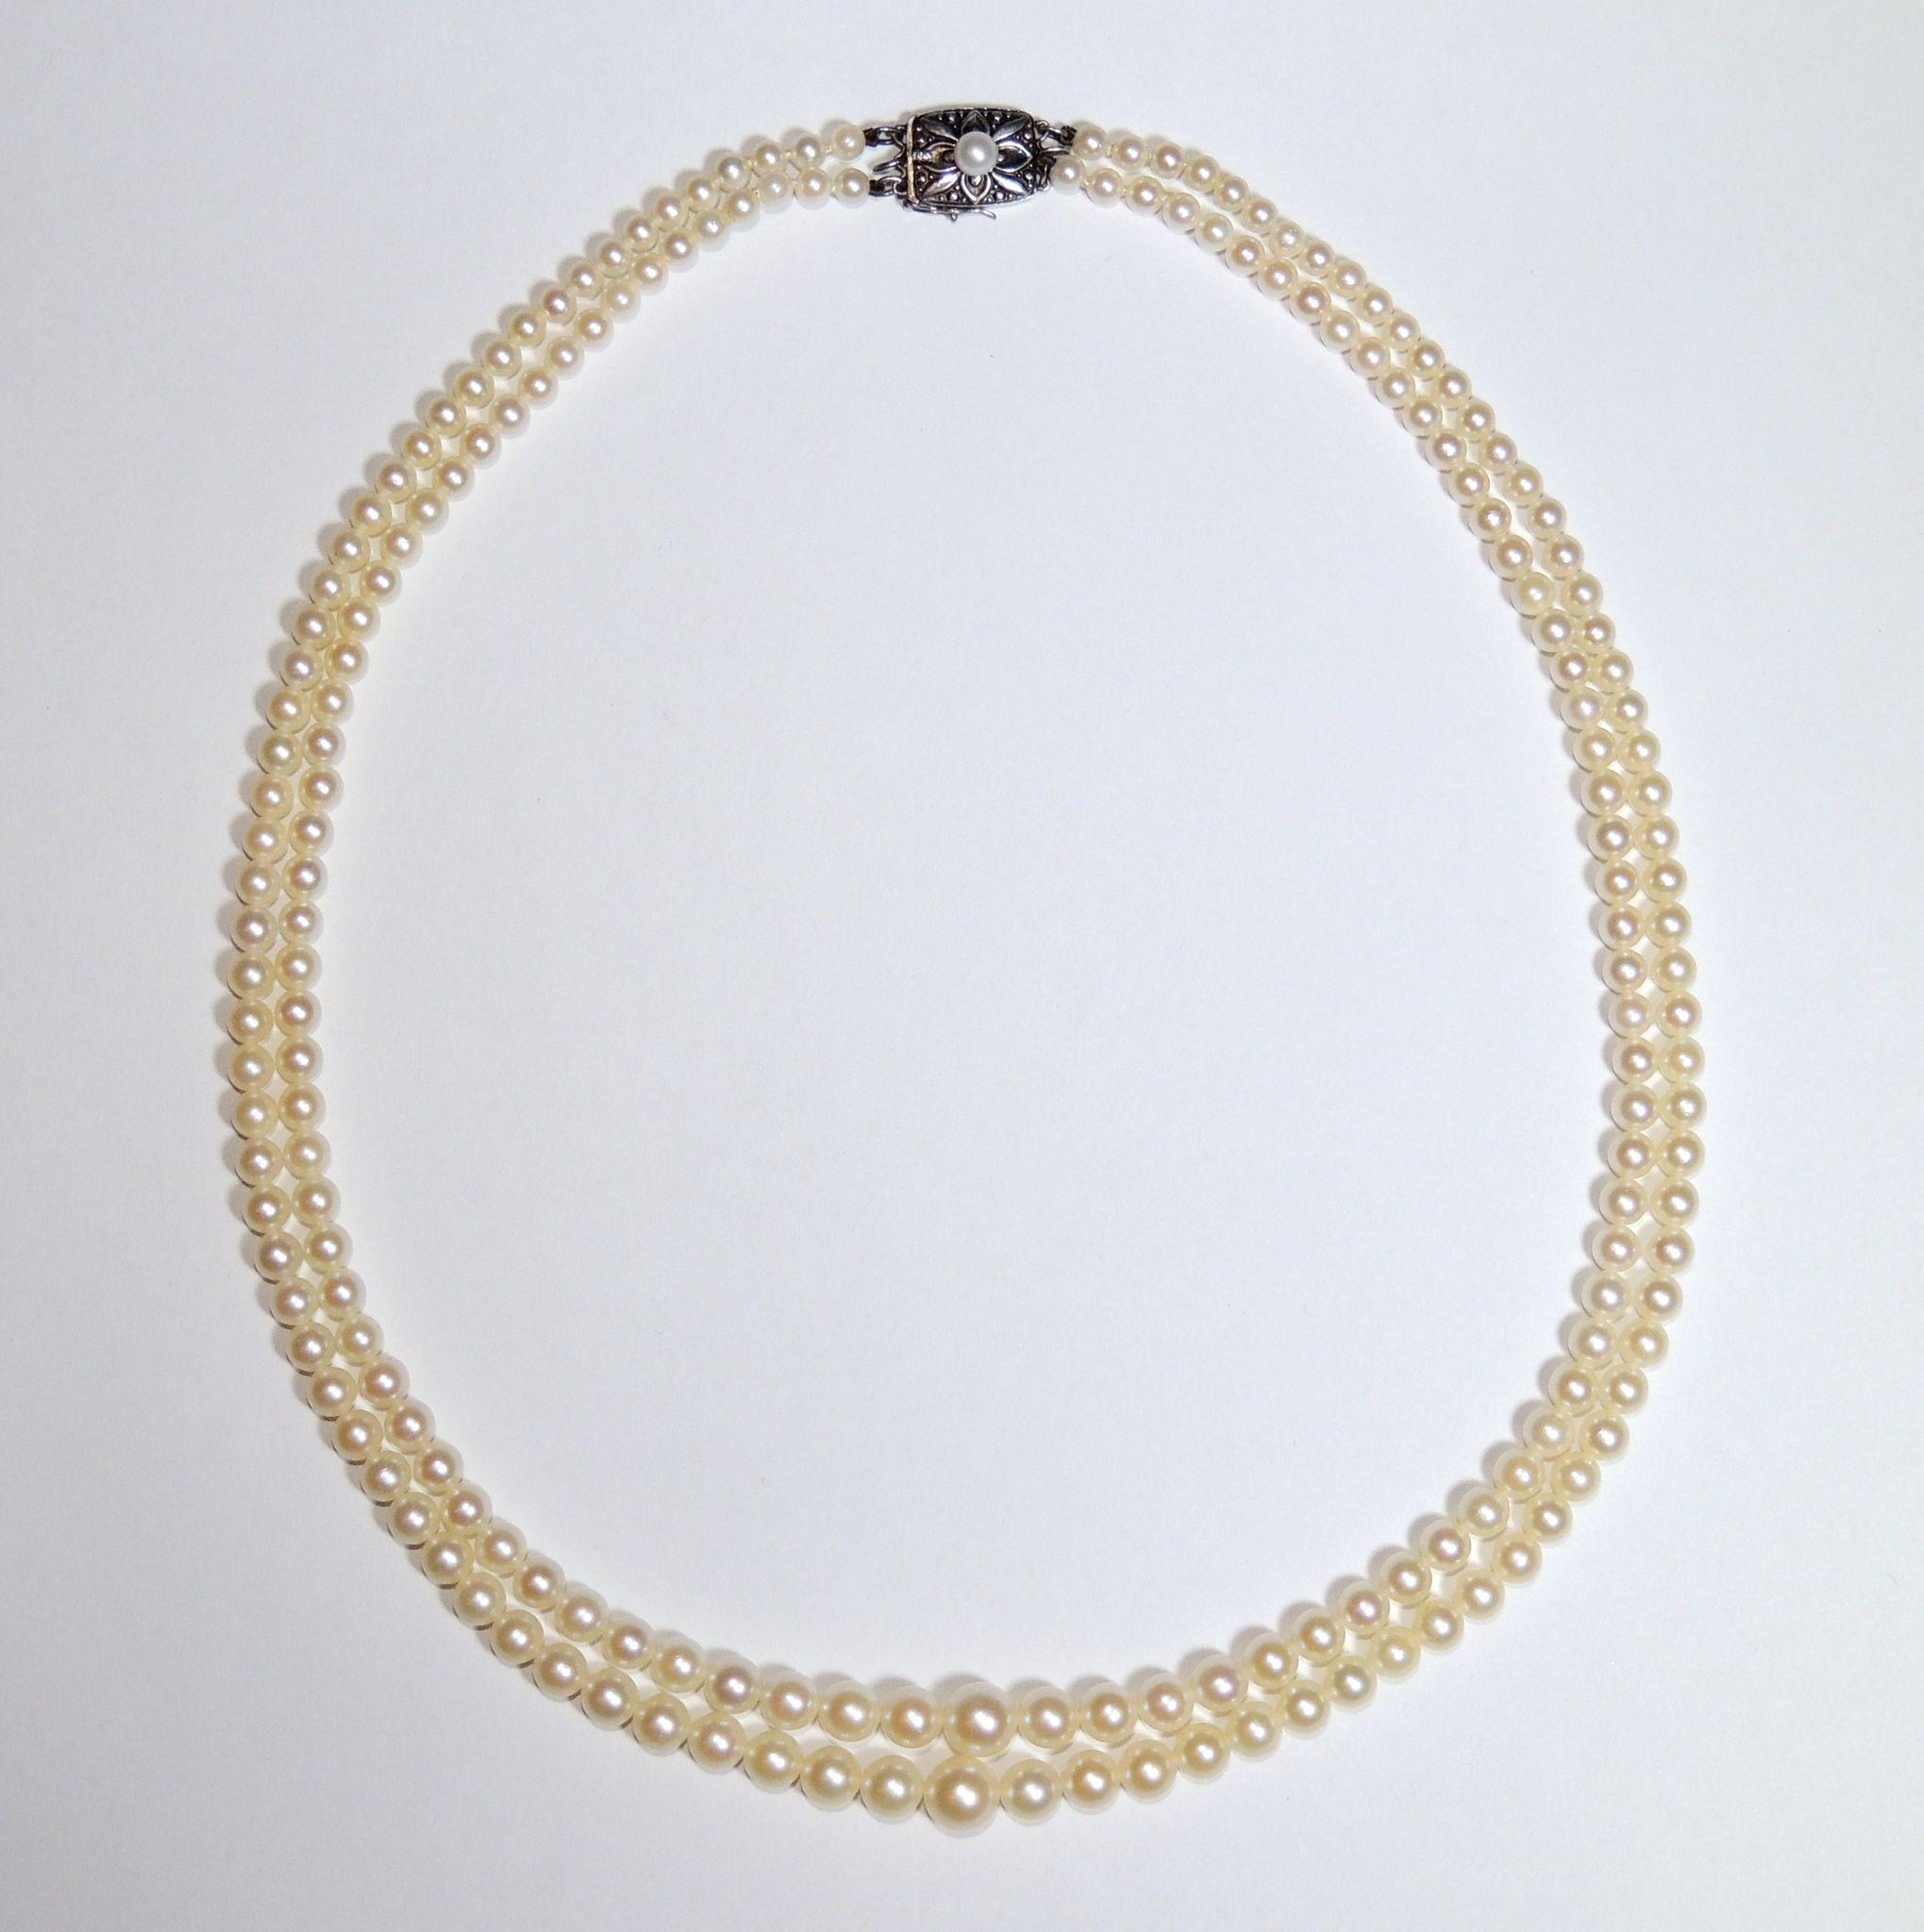 White Freshwater Double Strand Pearl Necklace 7 5 8 0mm Source · Roll Over  Large Image To Magnify Click Large Image To Zoom